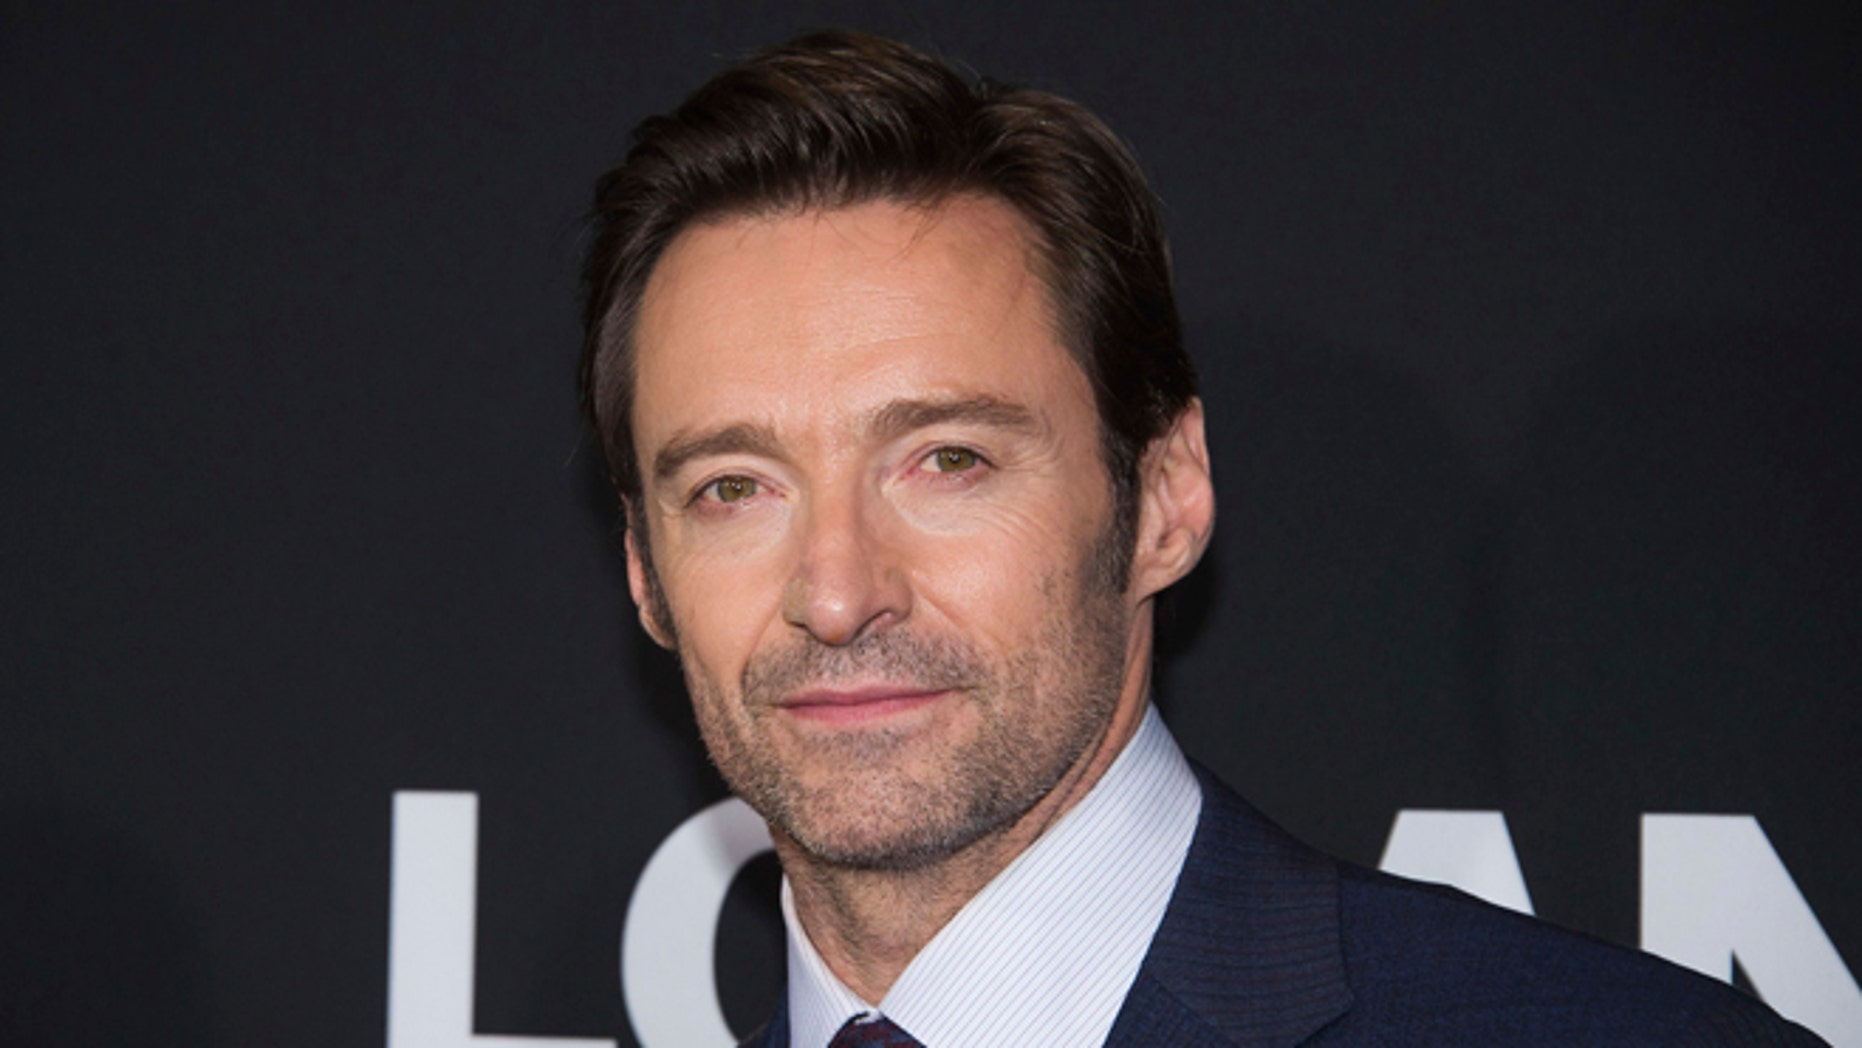 Hugh Jackman didn't know wolverines are real animals.